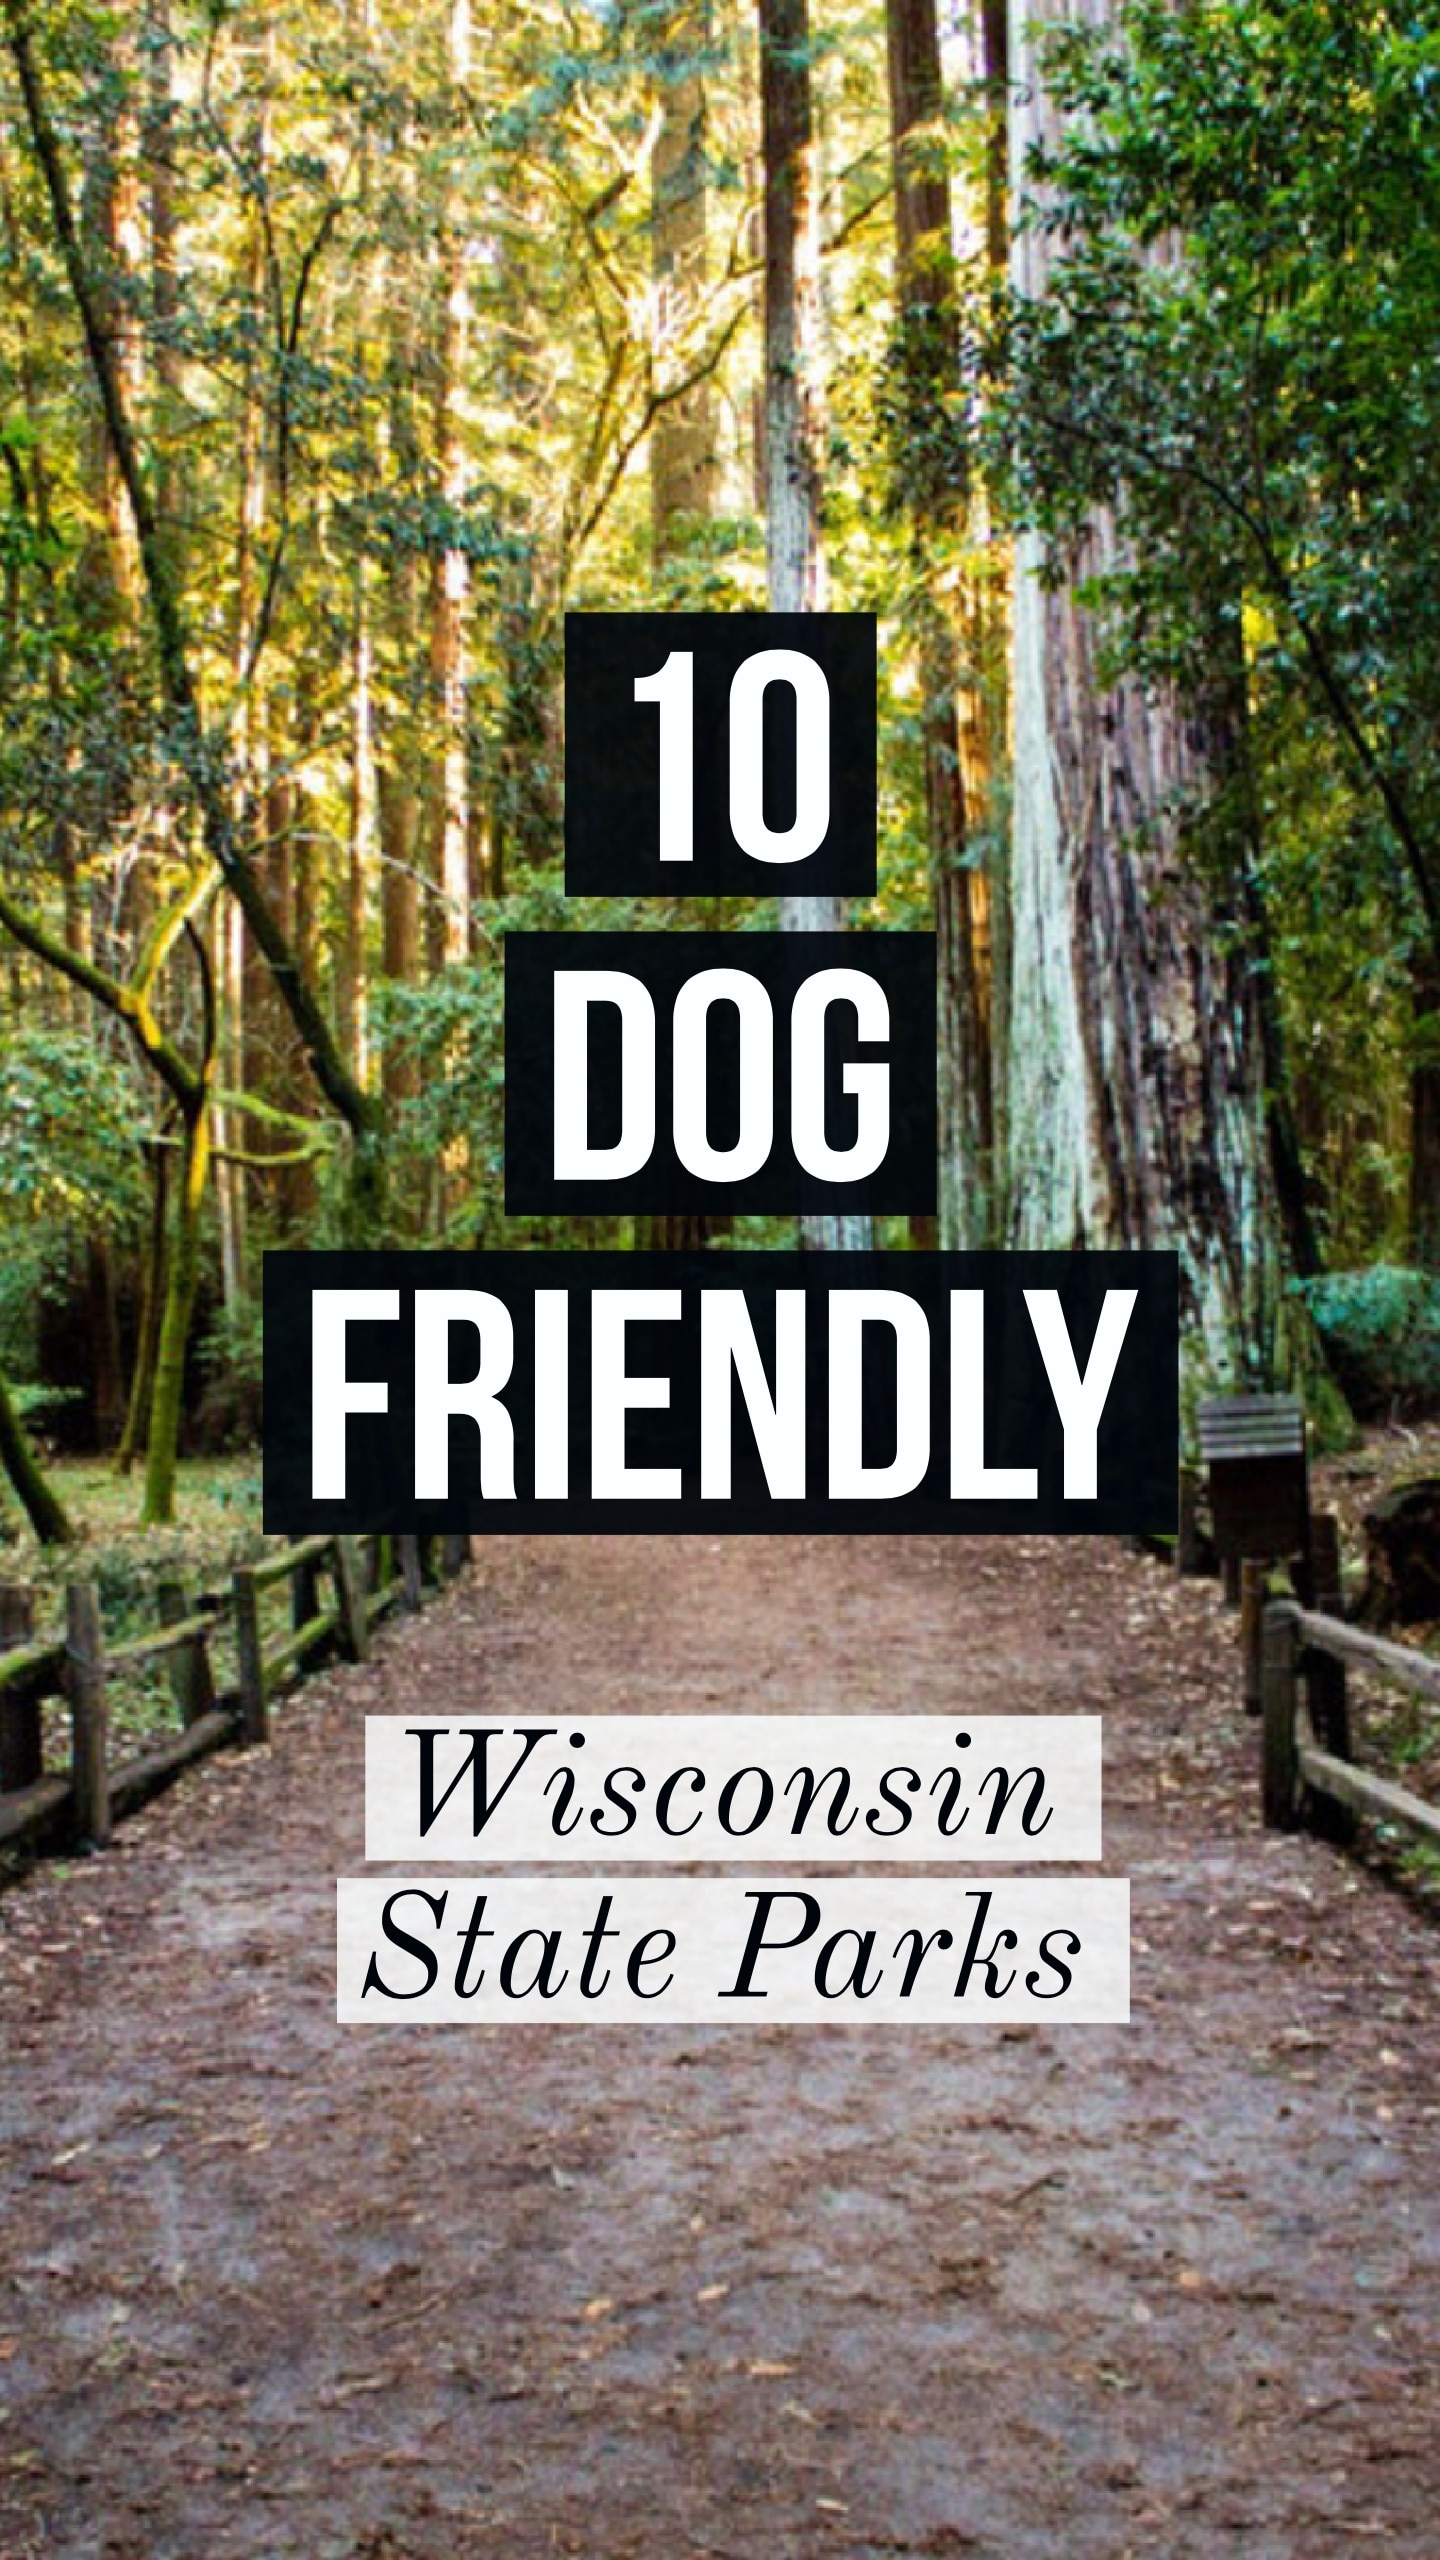 10 dog friendly Wisconsin state parks